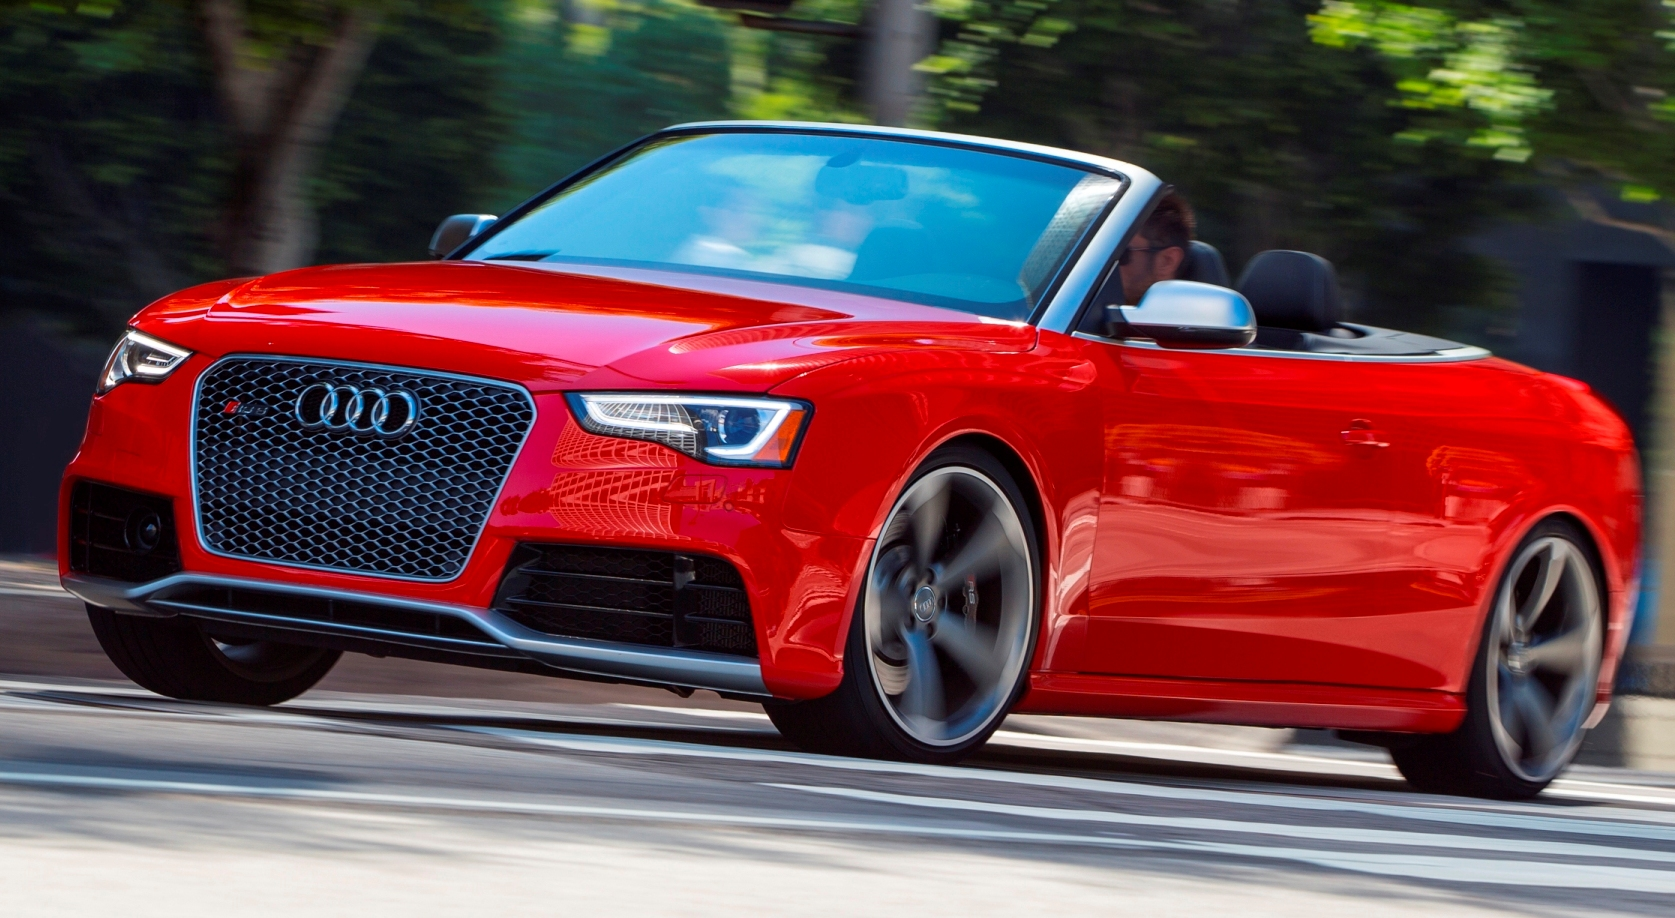 2014 Audi RS5 Cabriolet | Top Speed. »